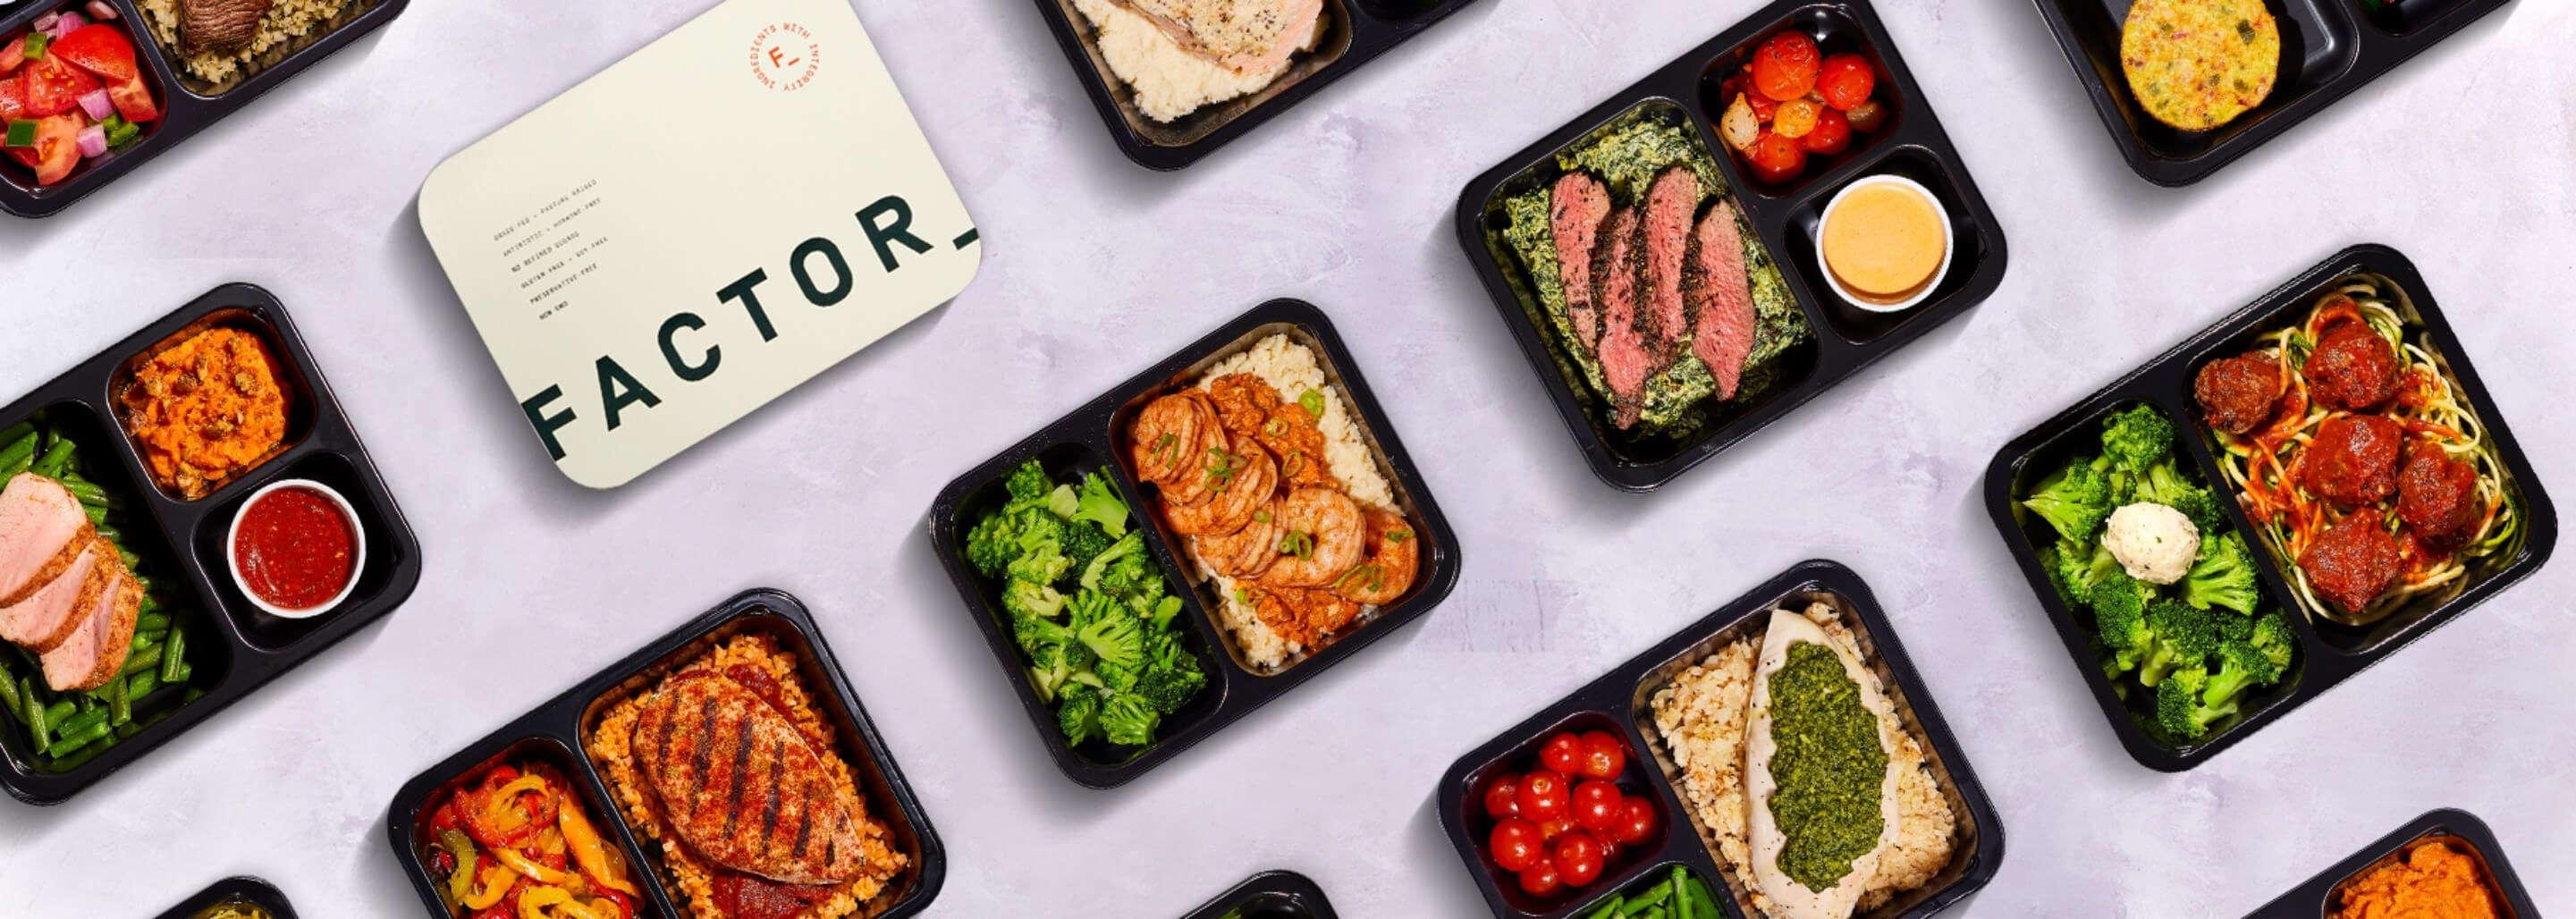 A bunch of pre-made meals in black containers